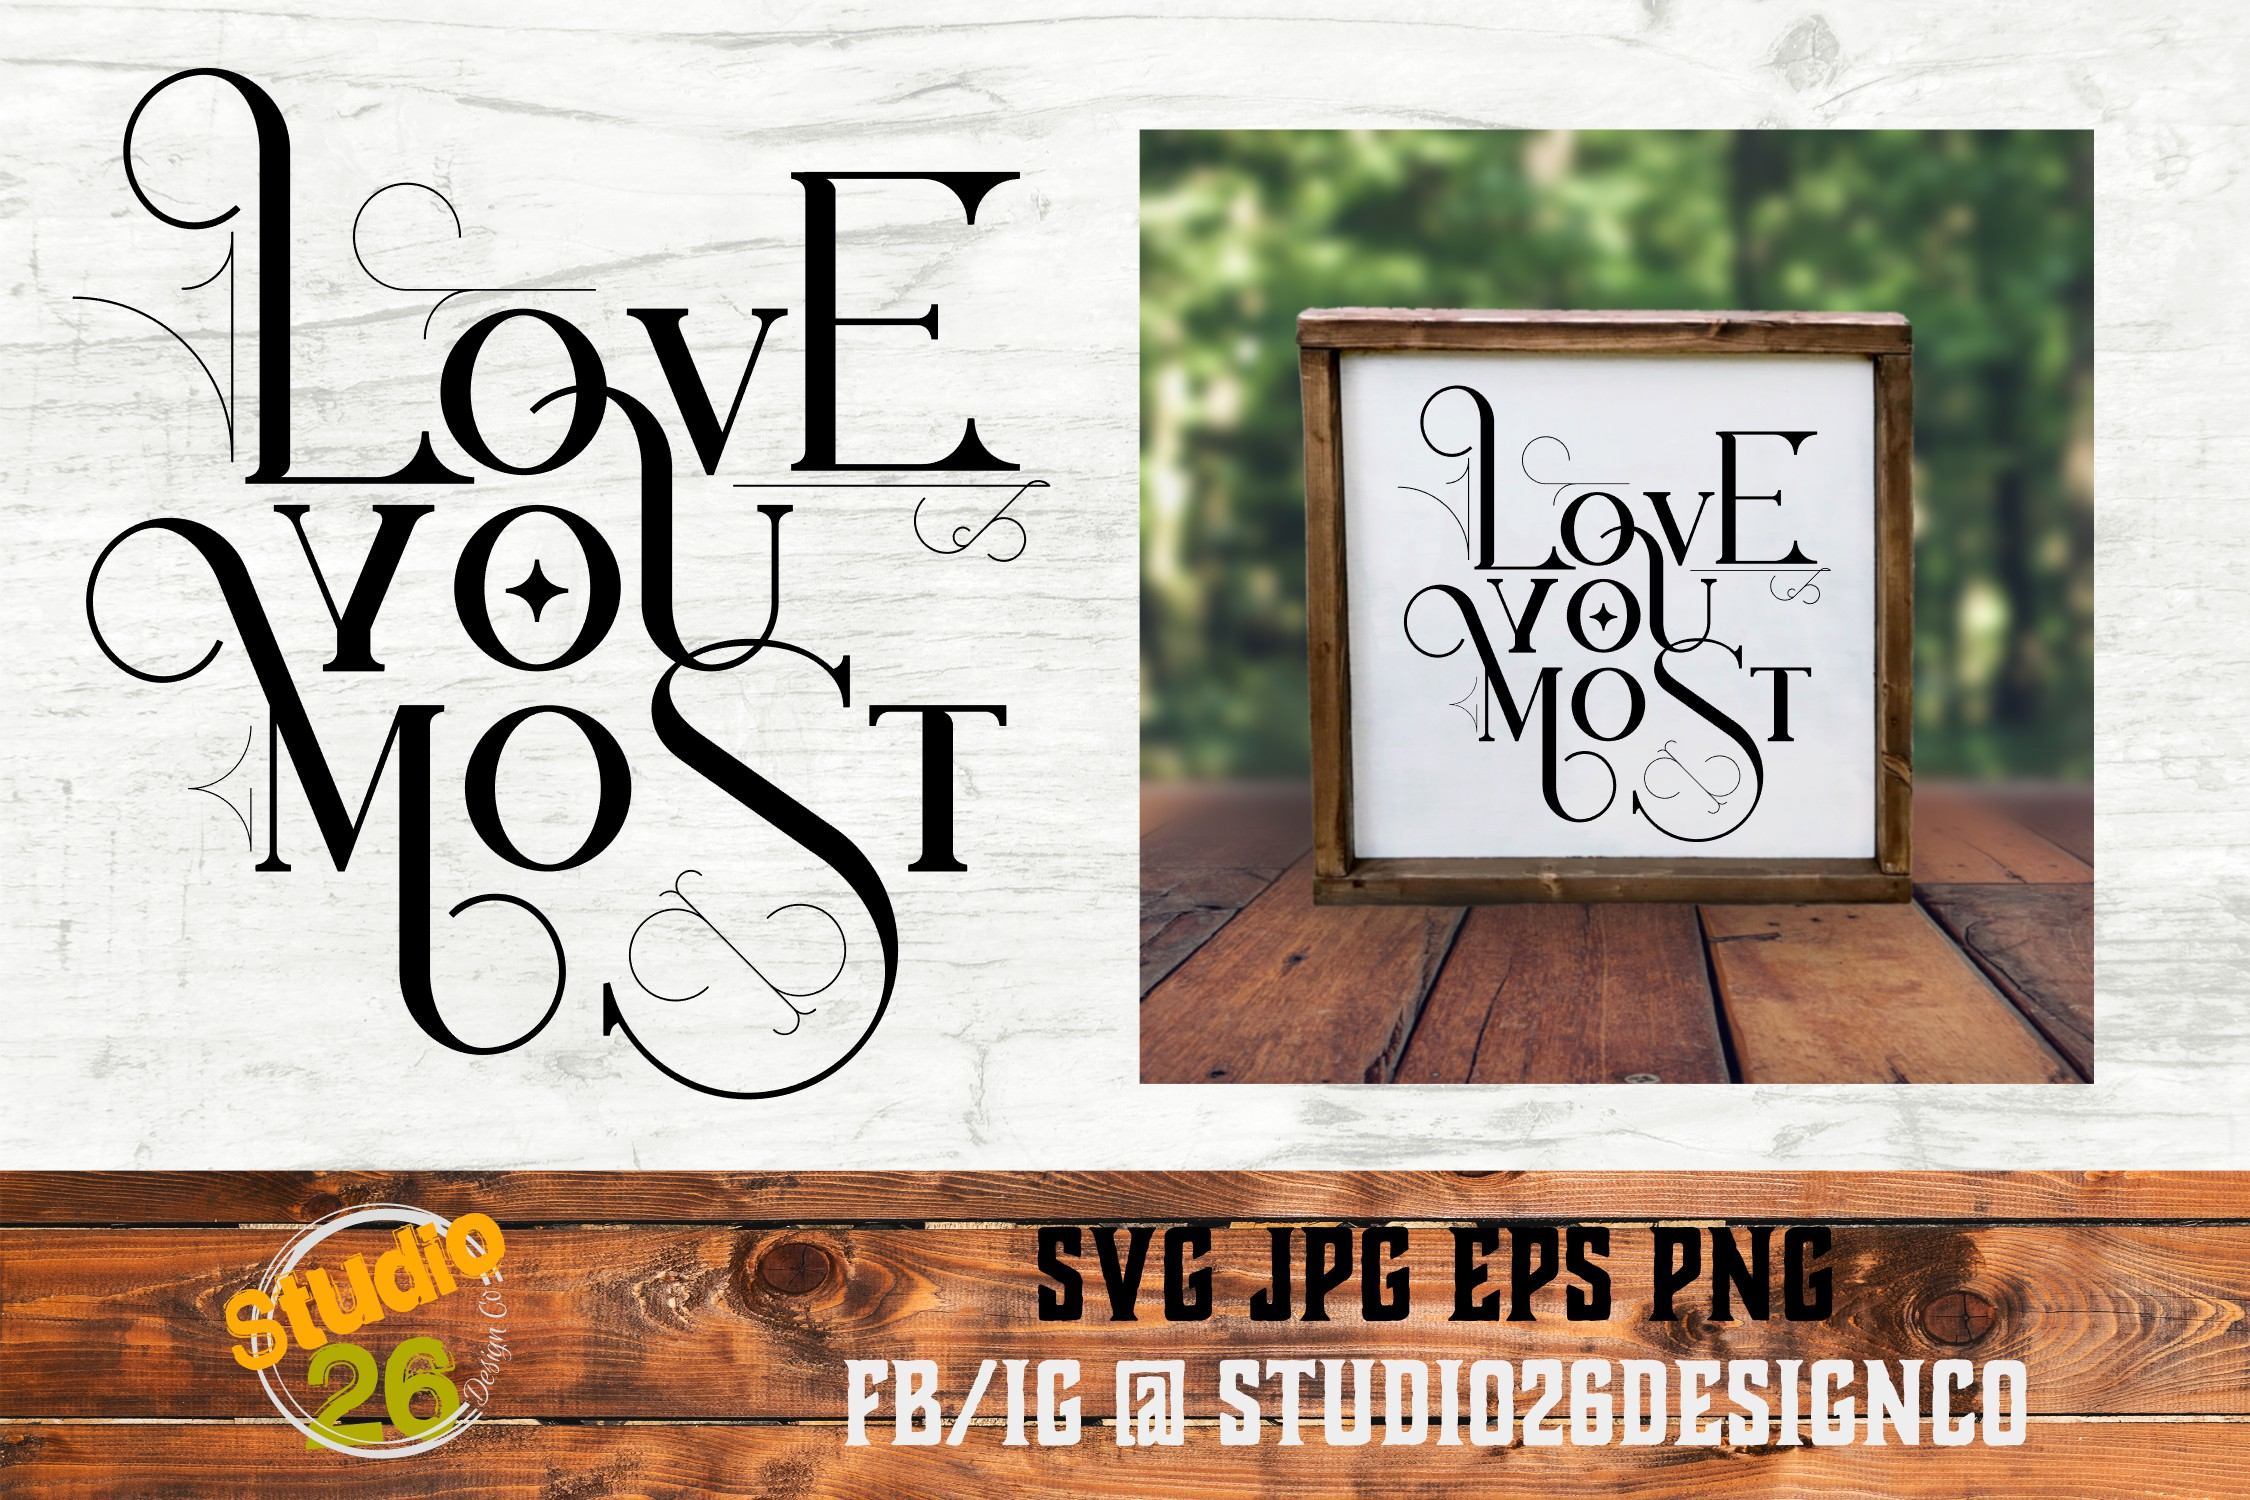 Download Free Love You Most Svg Png Eps Graphic By Studio 26 Design Co for Cricut Explore, Silhouette and other cutting machines.